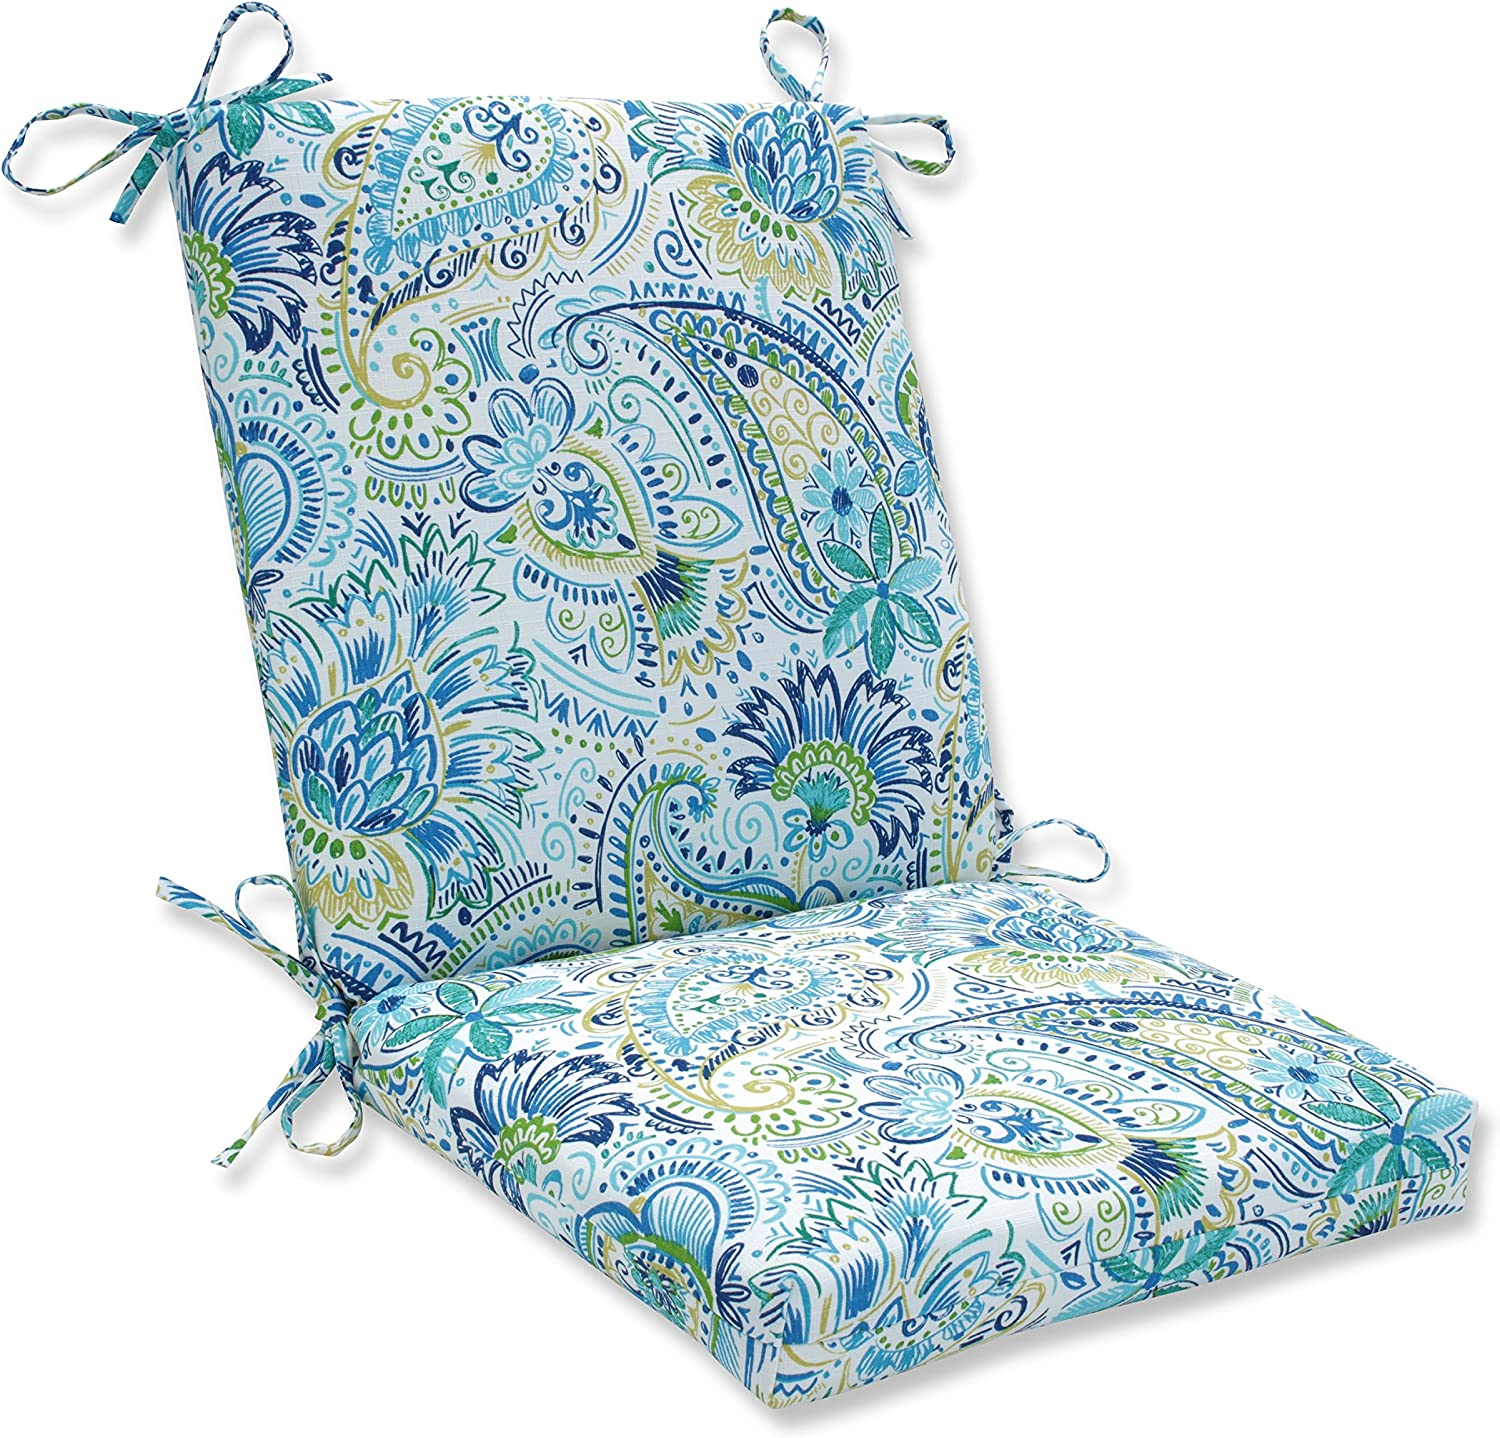 """Pillow Perfect Outdoor/Indoor Gilford Baltic Square Corner Chair Cushion, 36.5"""" x 18"""", Blue: Home & Kitchen"""